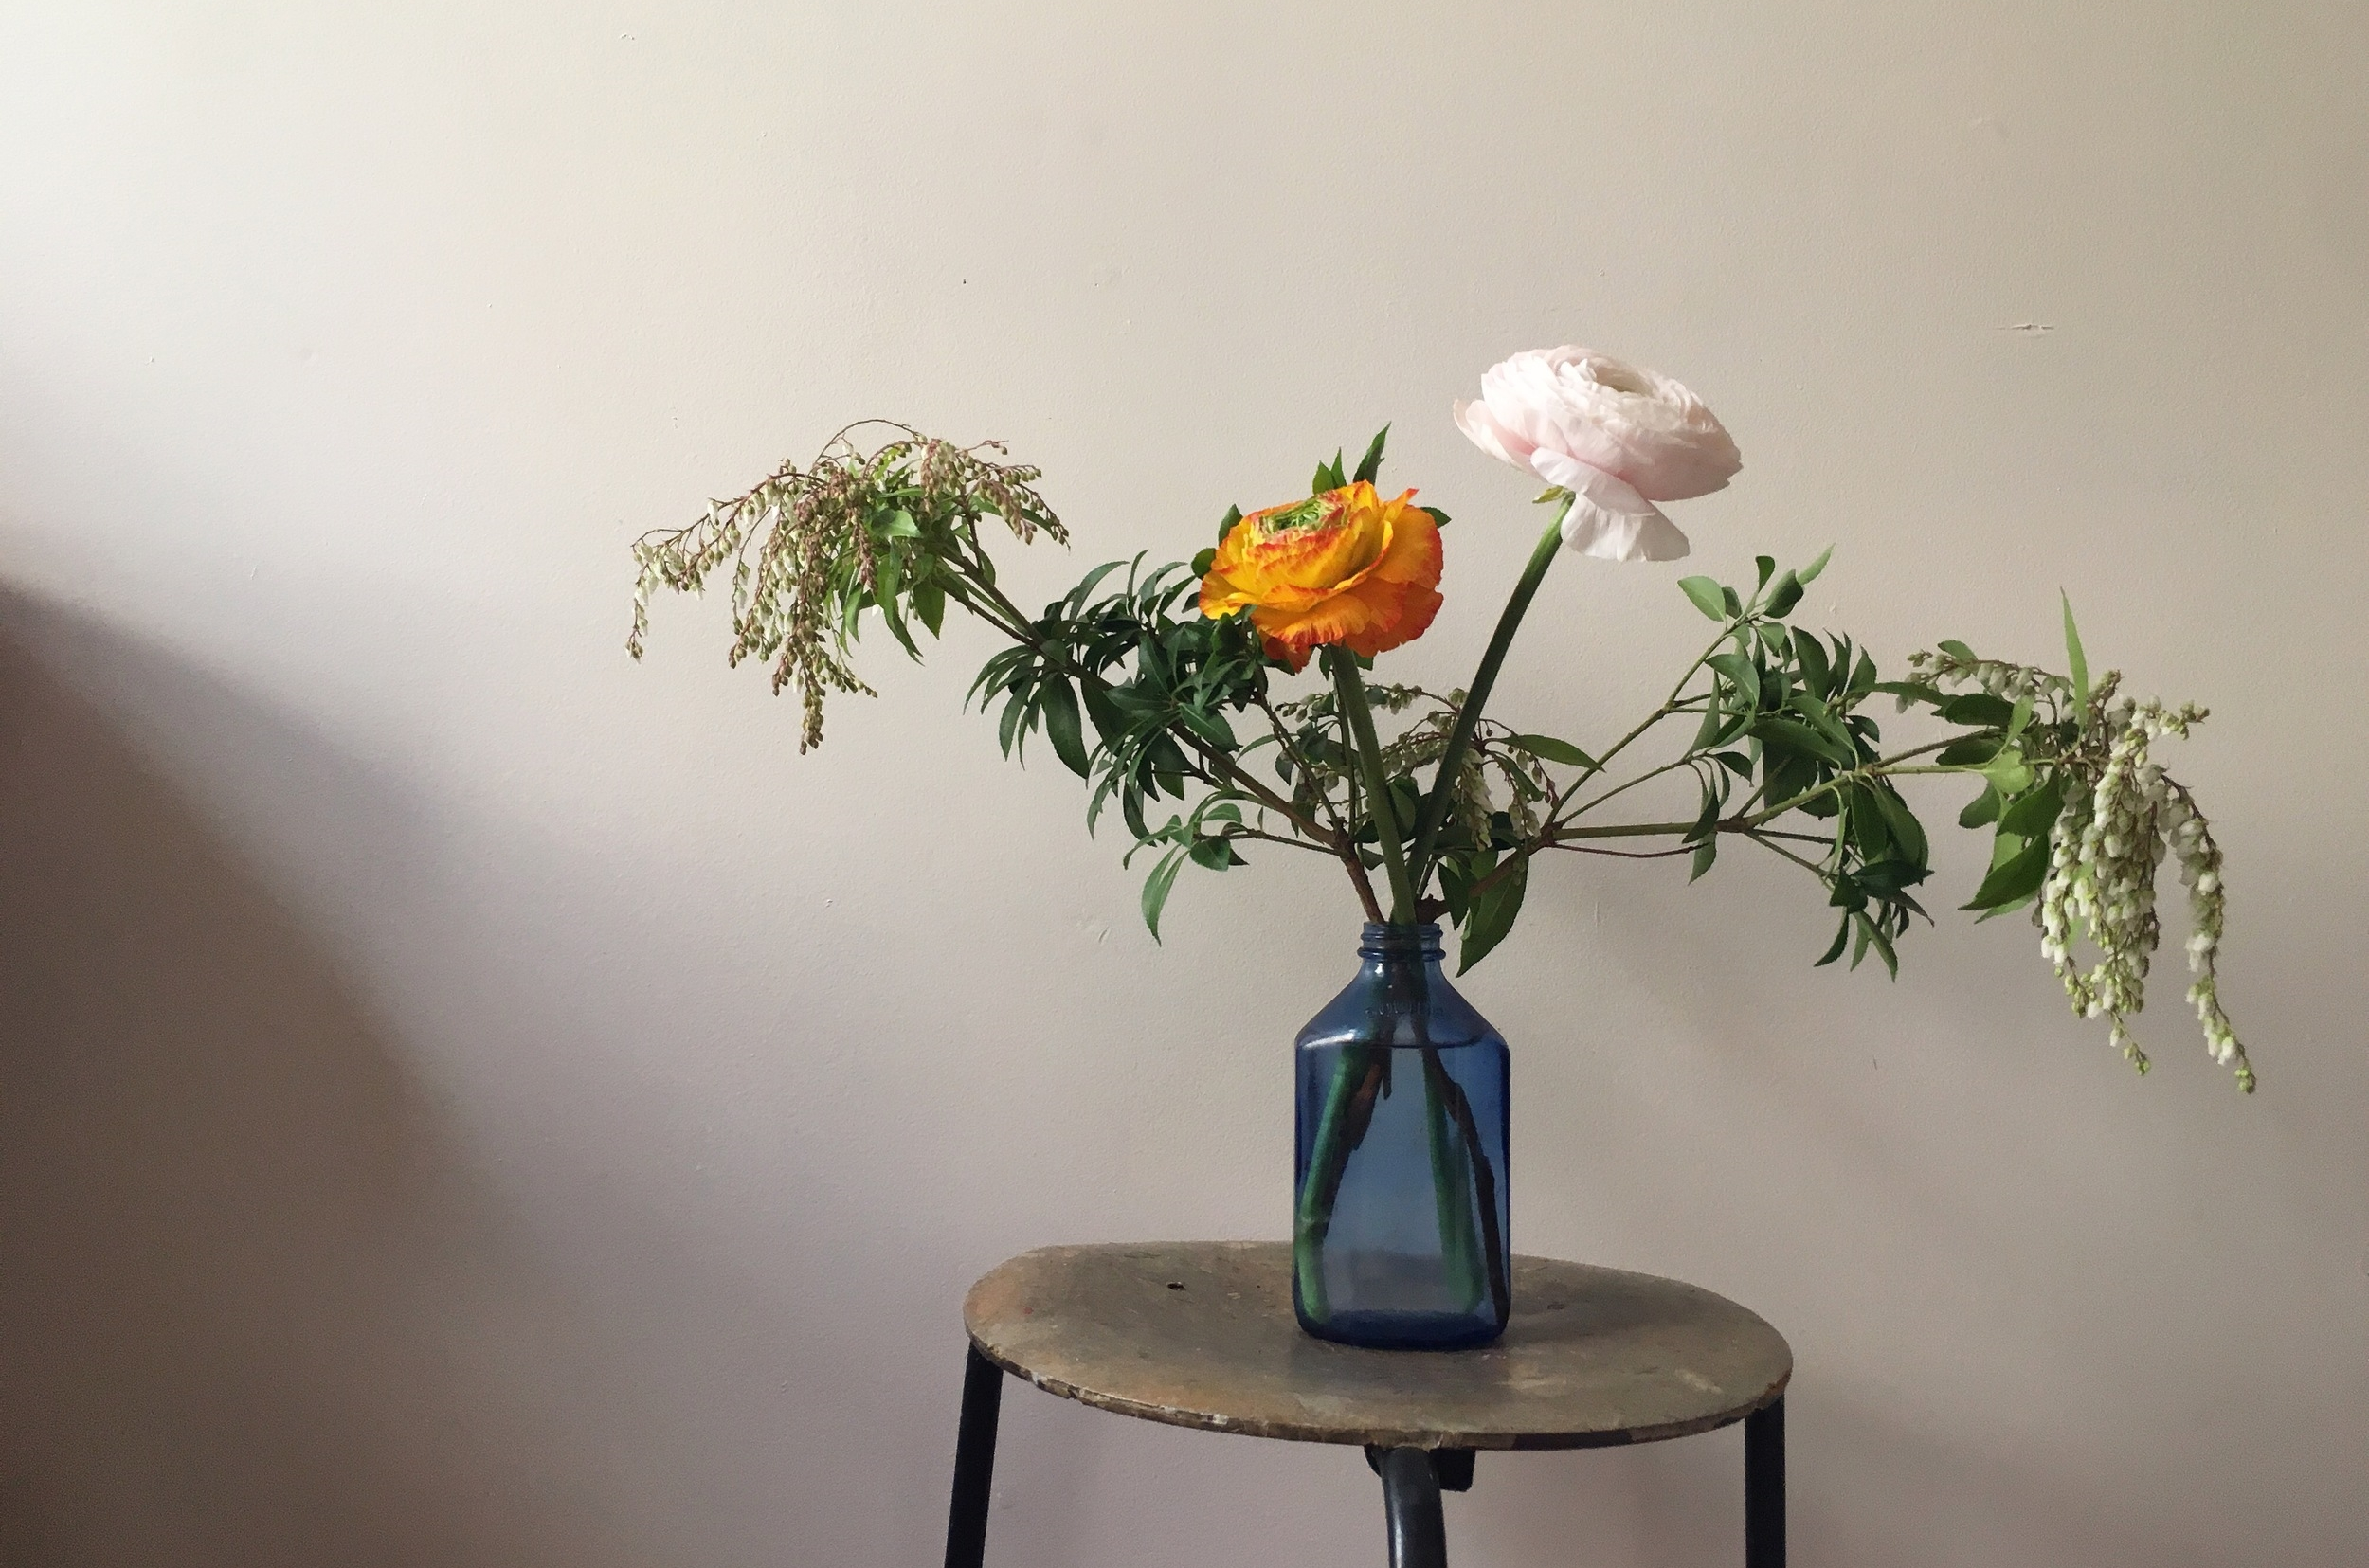 If only my world could be filled with Japanese ranunculus every day!